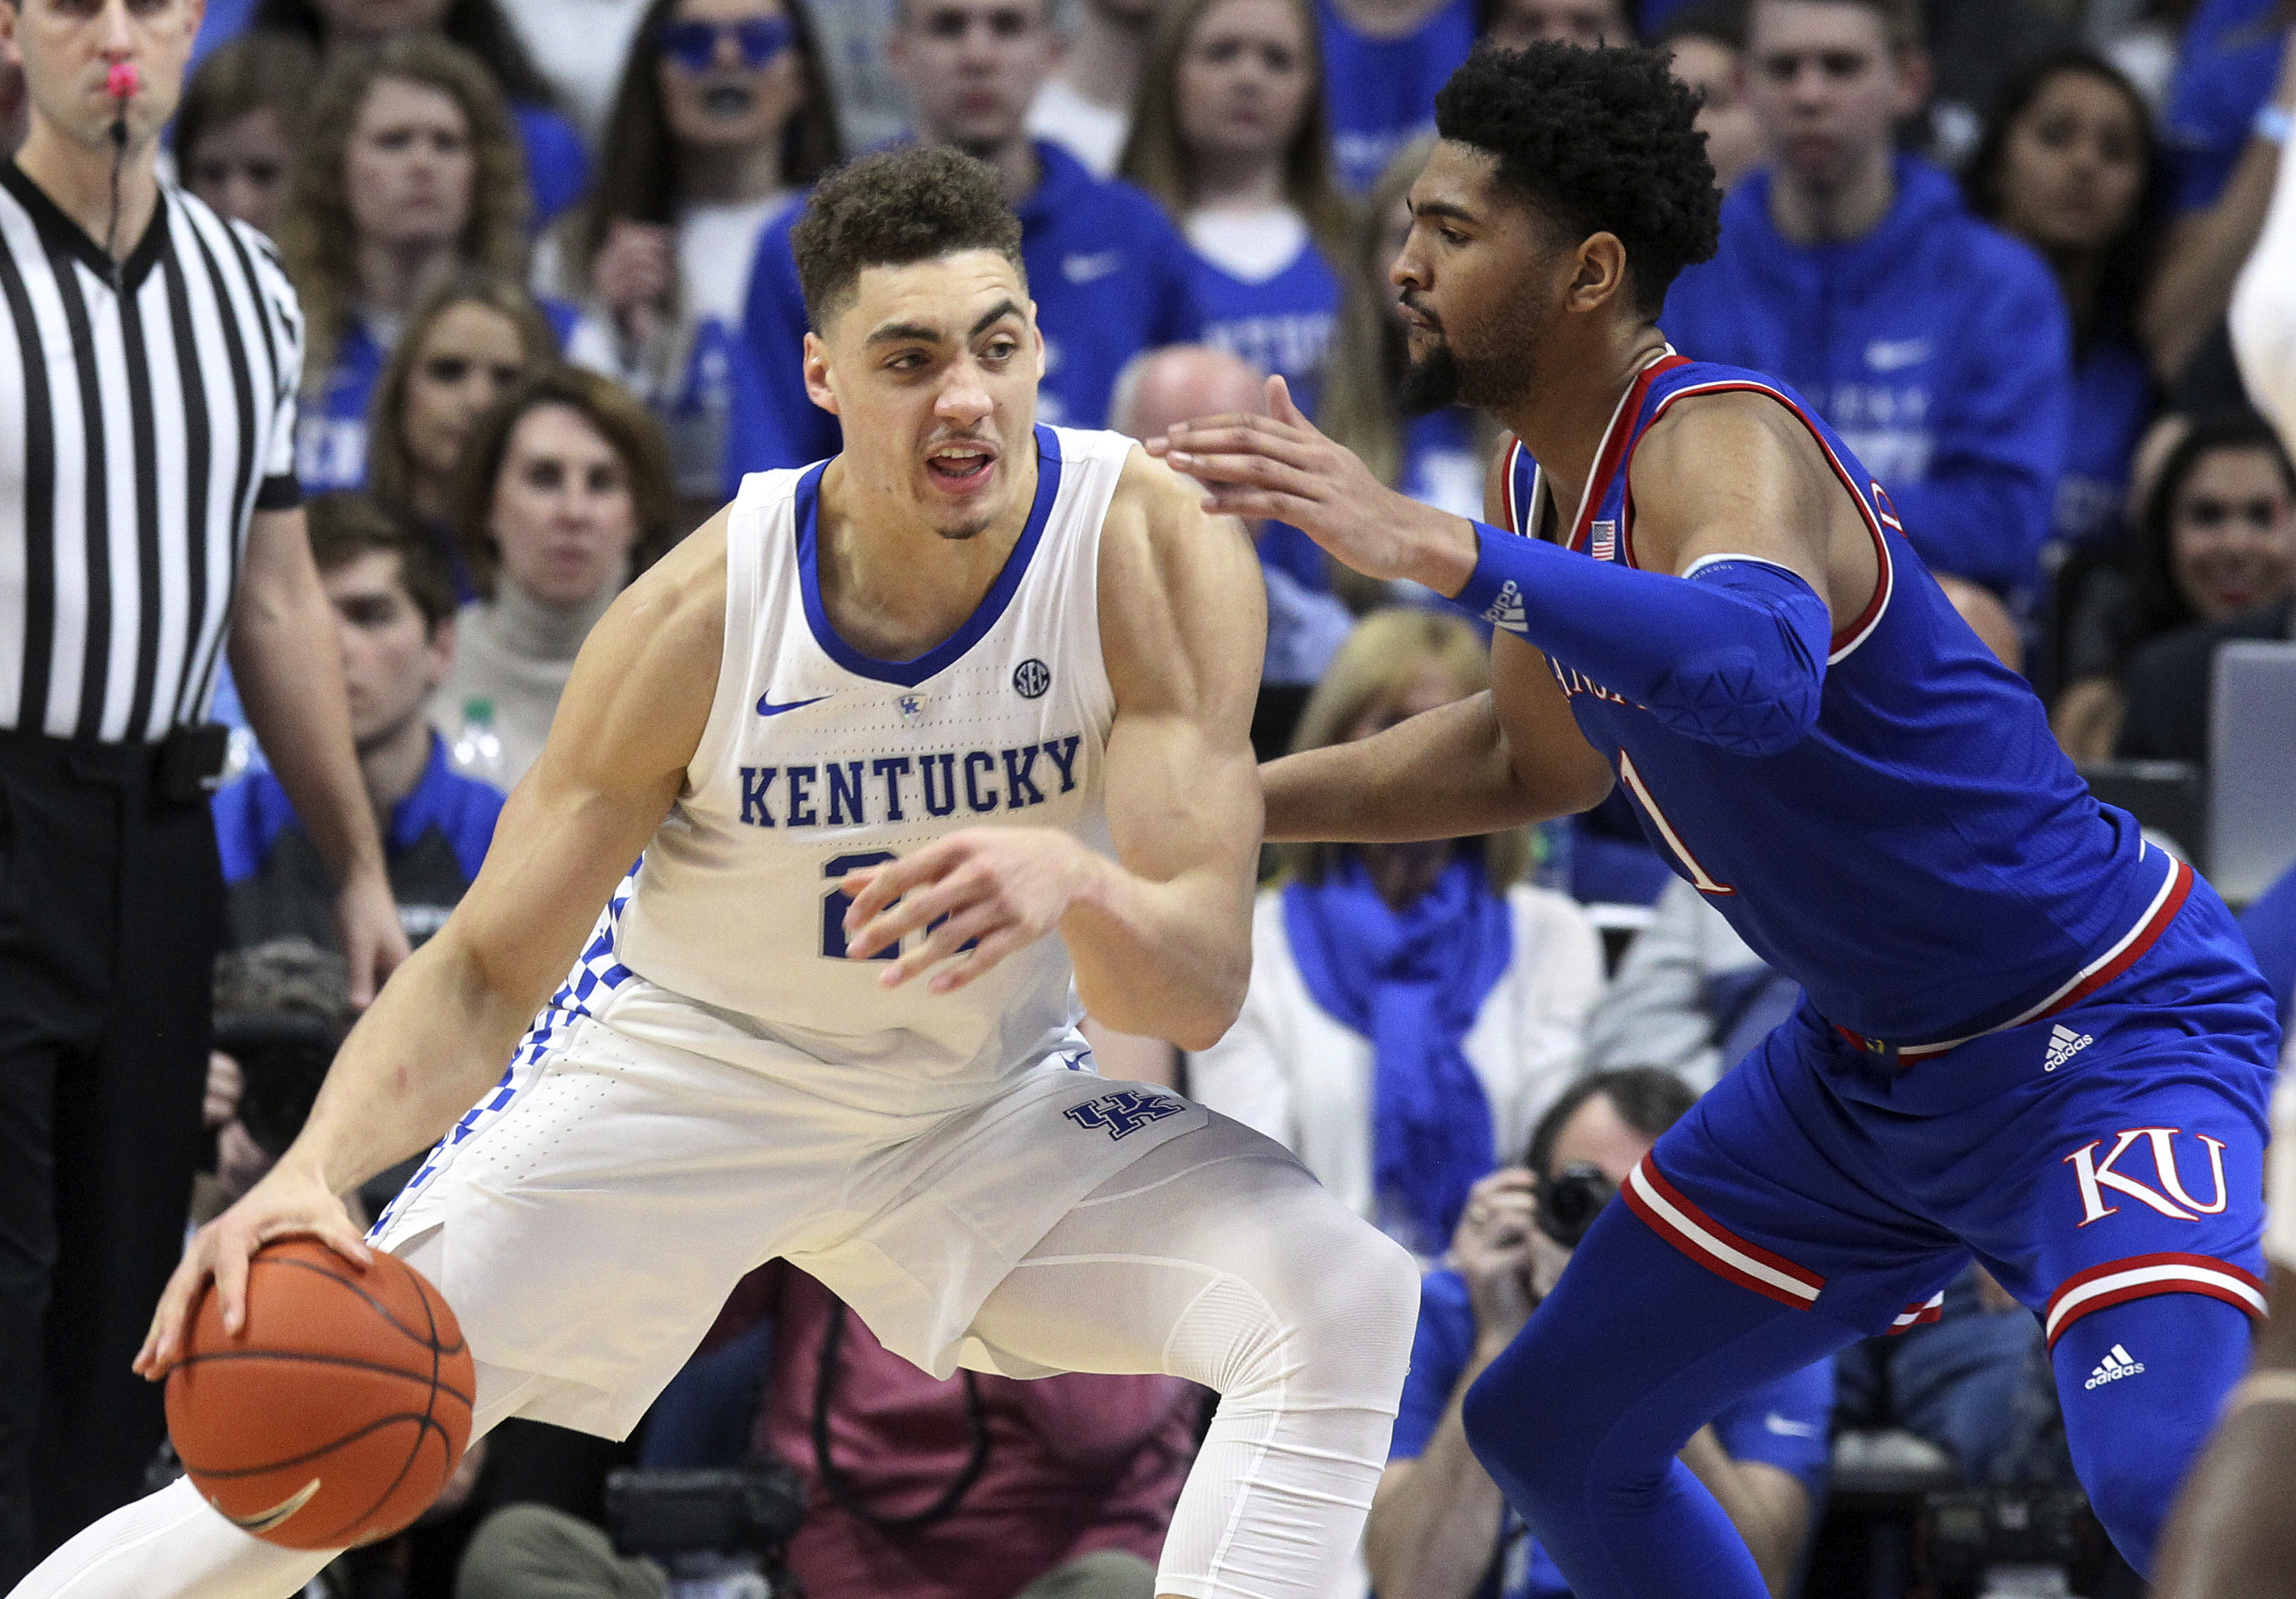 online store 568fd 85bf6 Jayhawks fall out of AP top 10 for first time this season   News, Sports,  Jobs - Lawrence Journal-World  news, information, headlines and events in  Lawrence ...